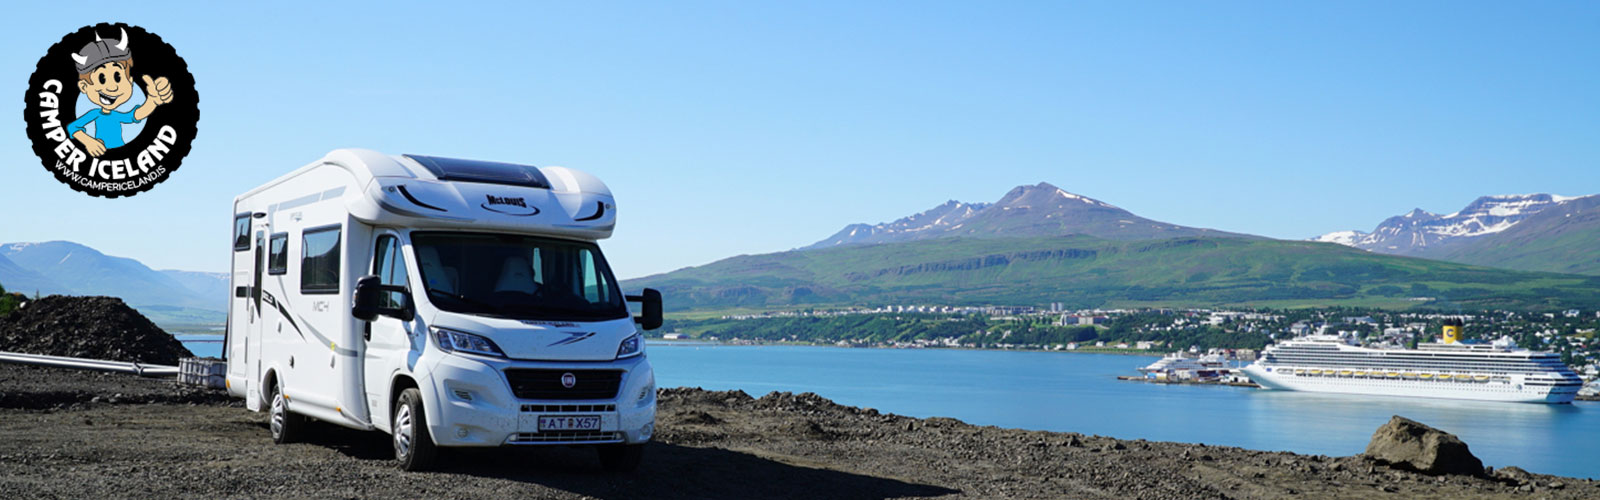 Nordic Car Rental Iceland Review